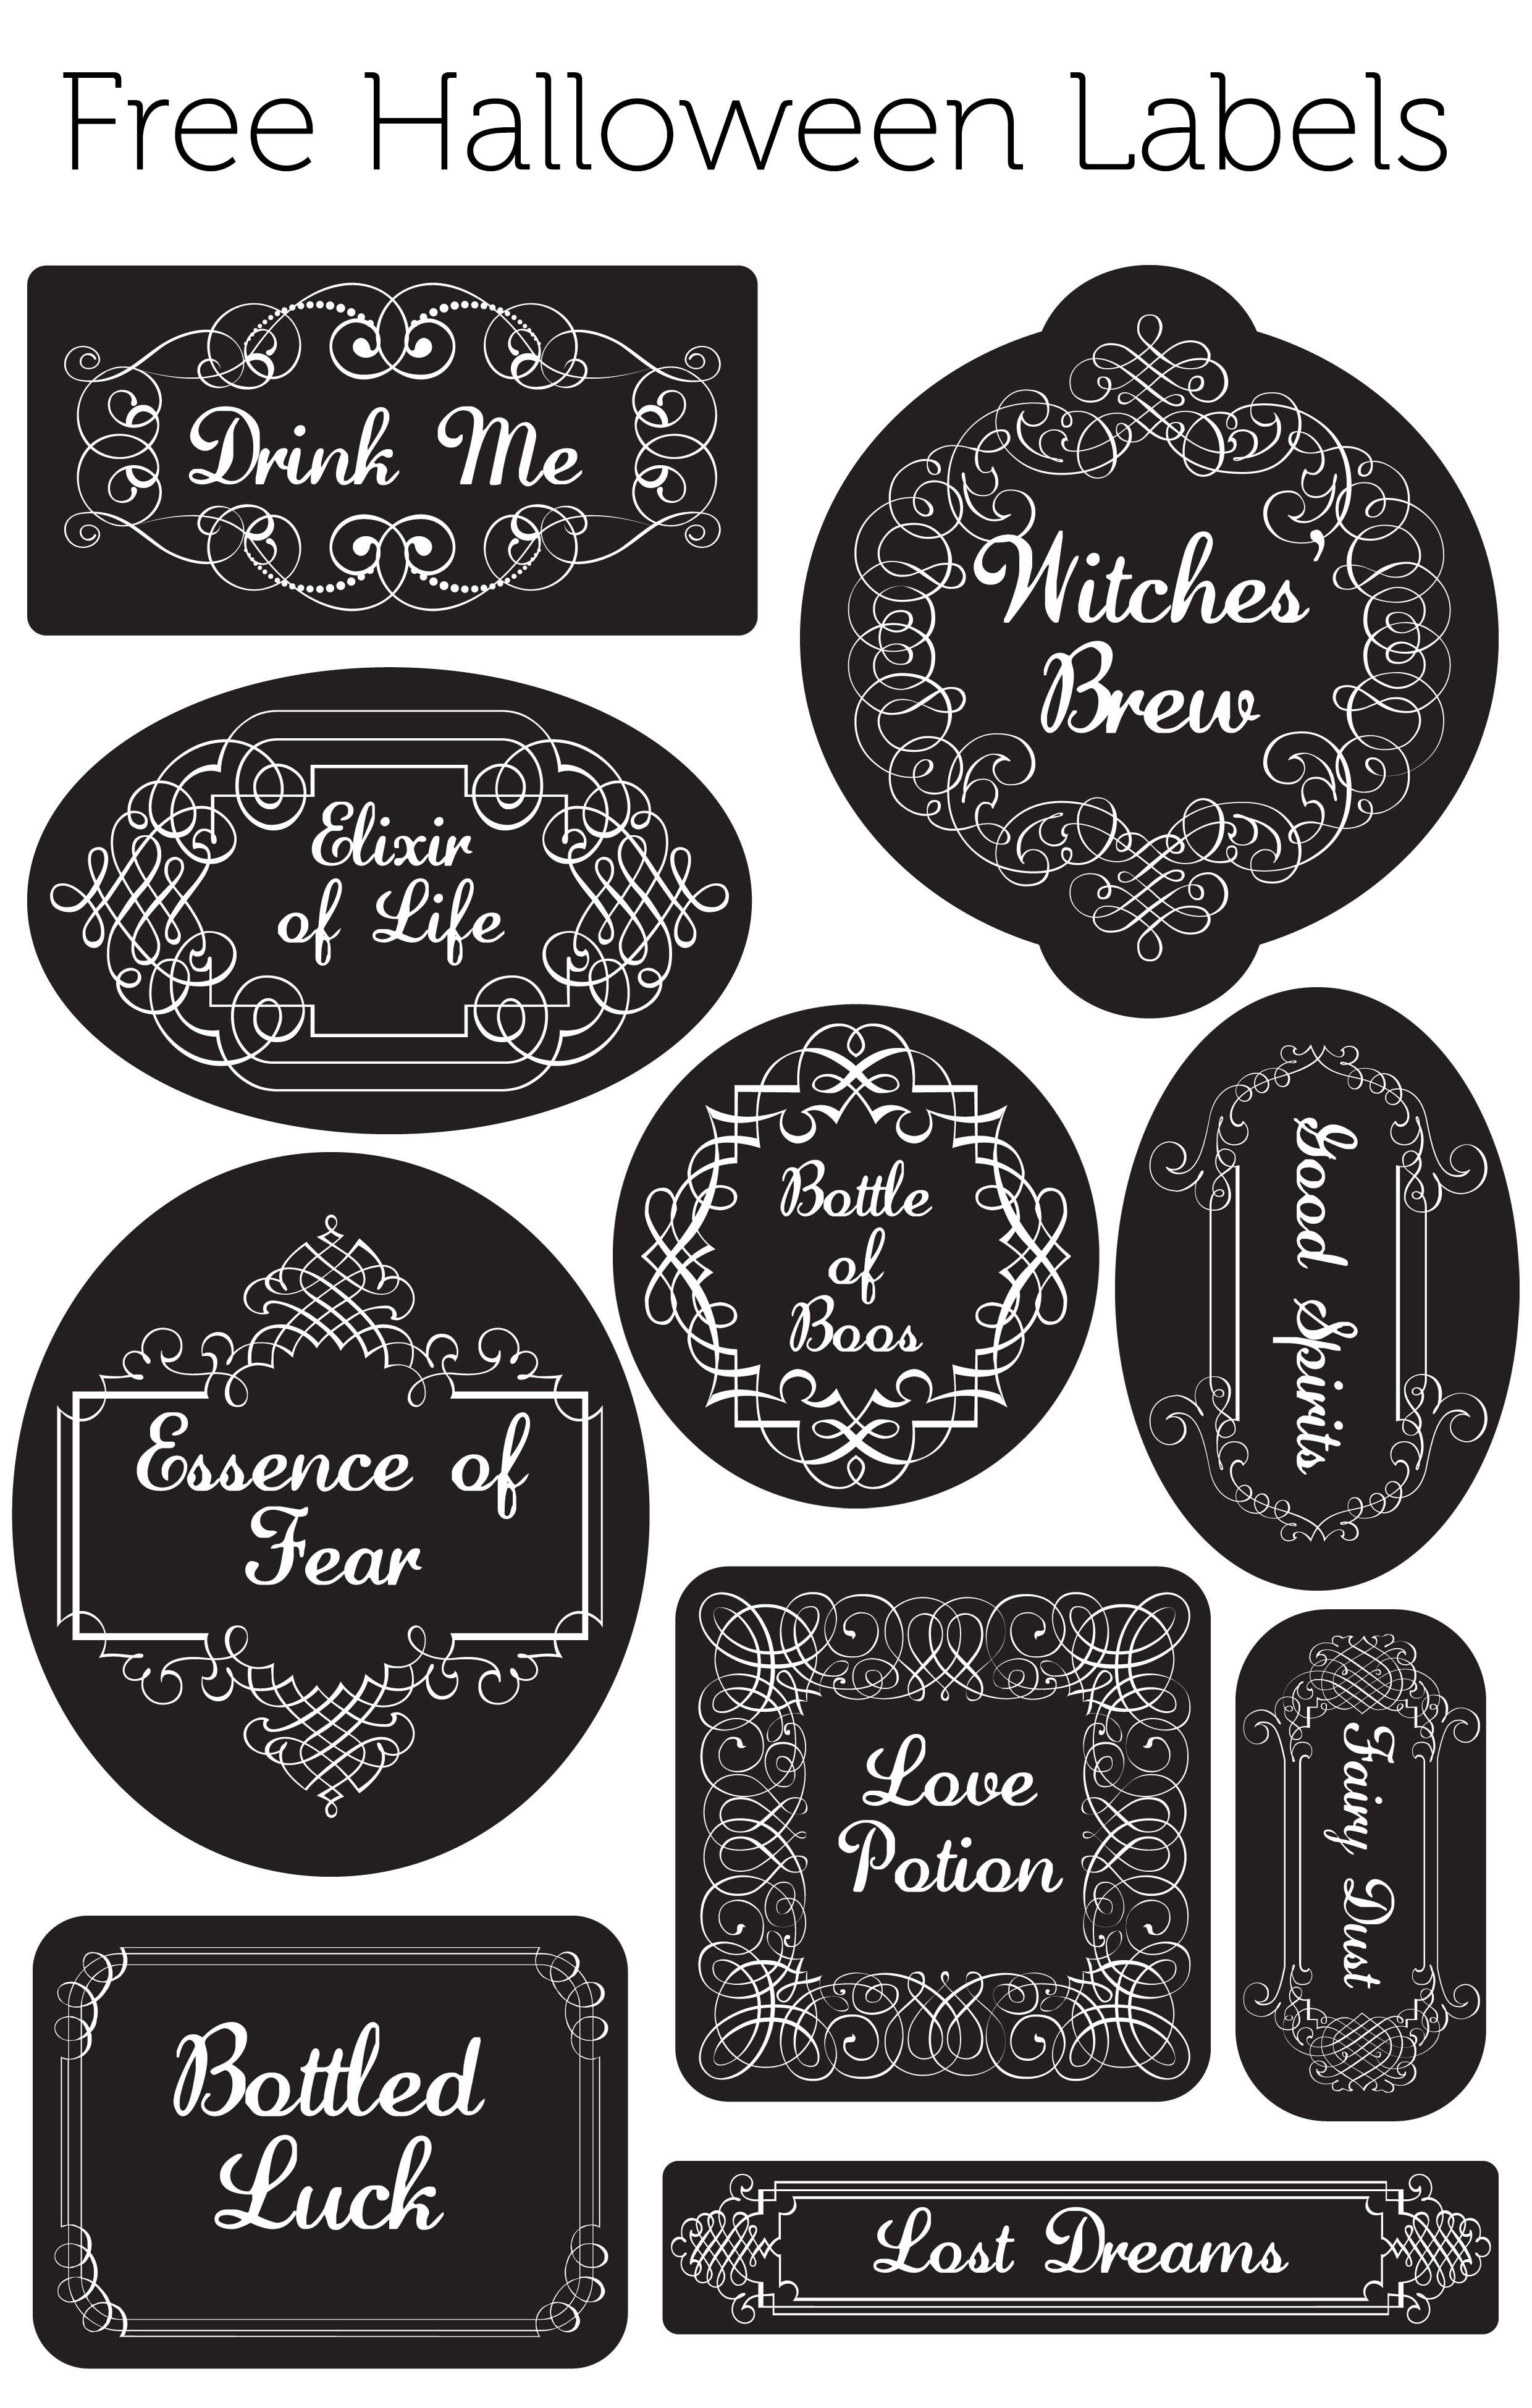 free halloween labels for jars glasses anything you want